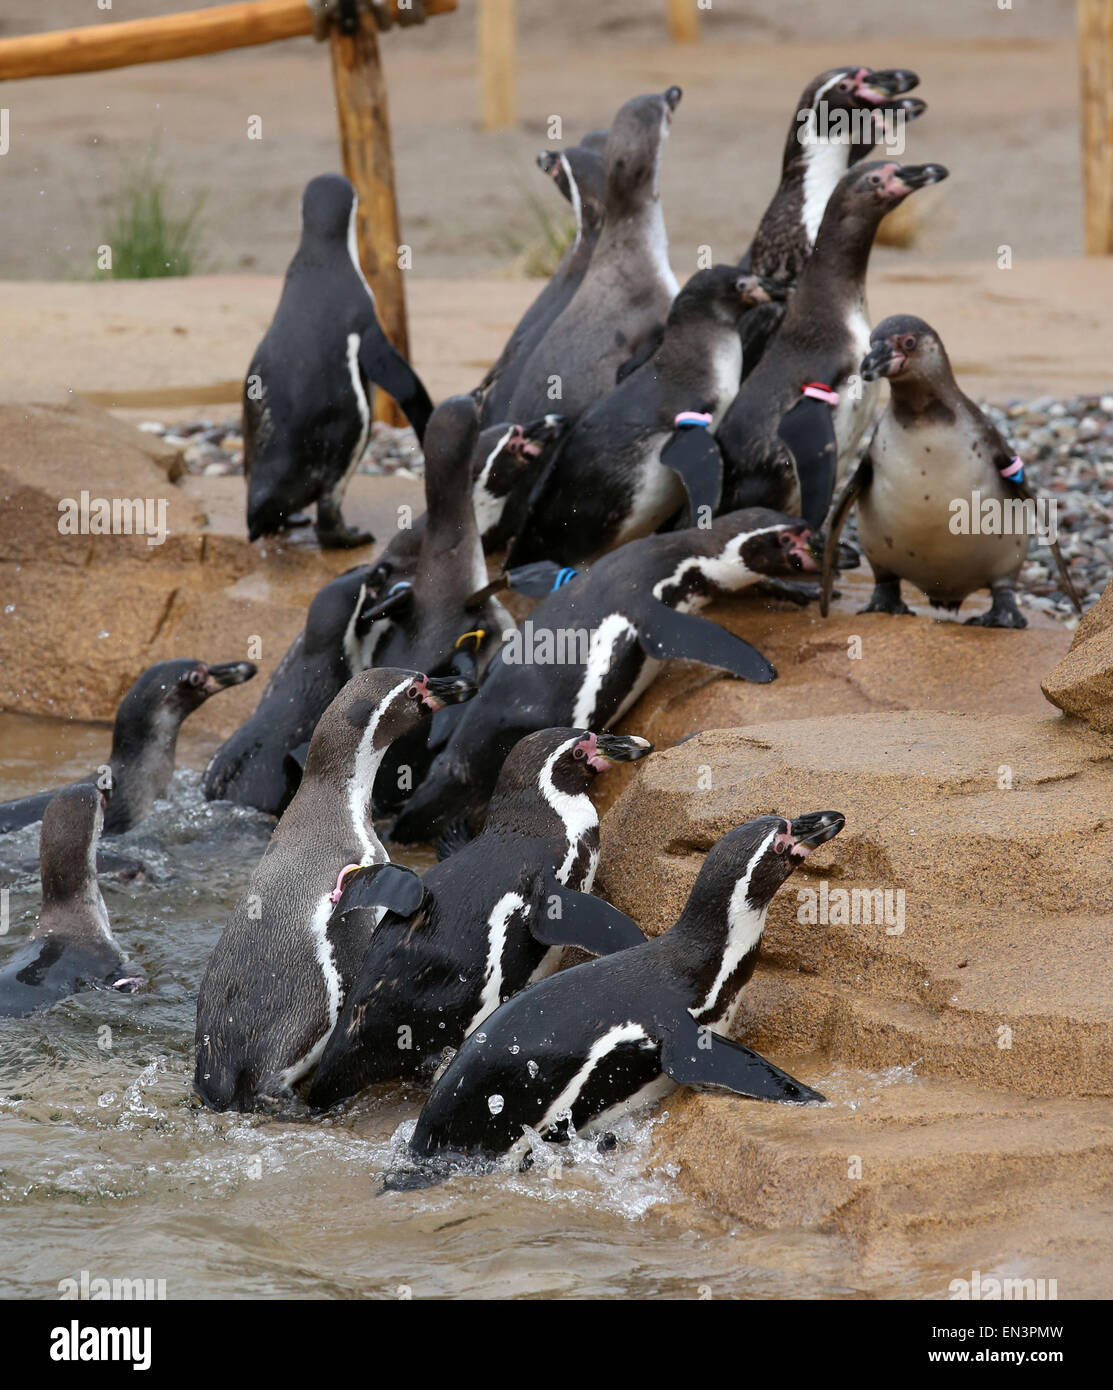 A group of Humboldt penguins move into their new enclosure at the bird park and sanctuary inMarlow, Germany, - Stock Image